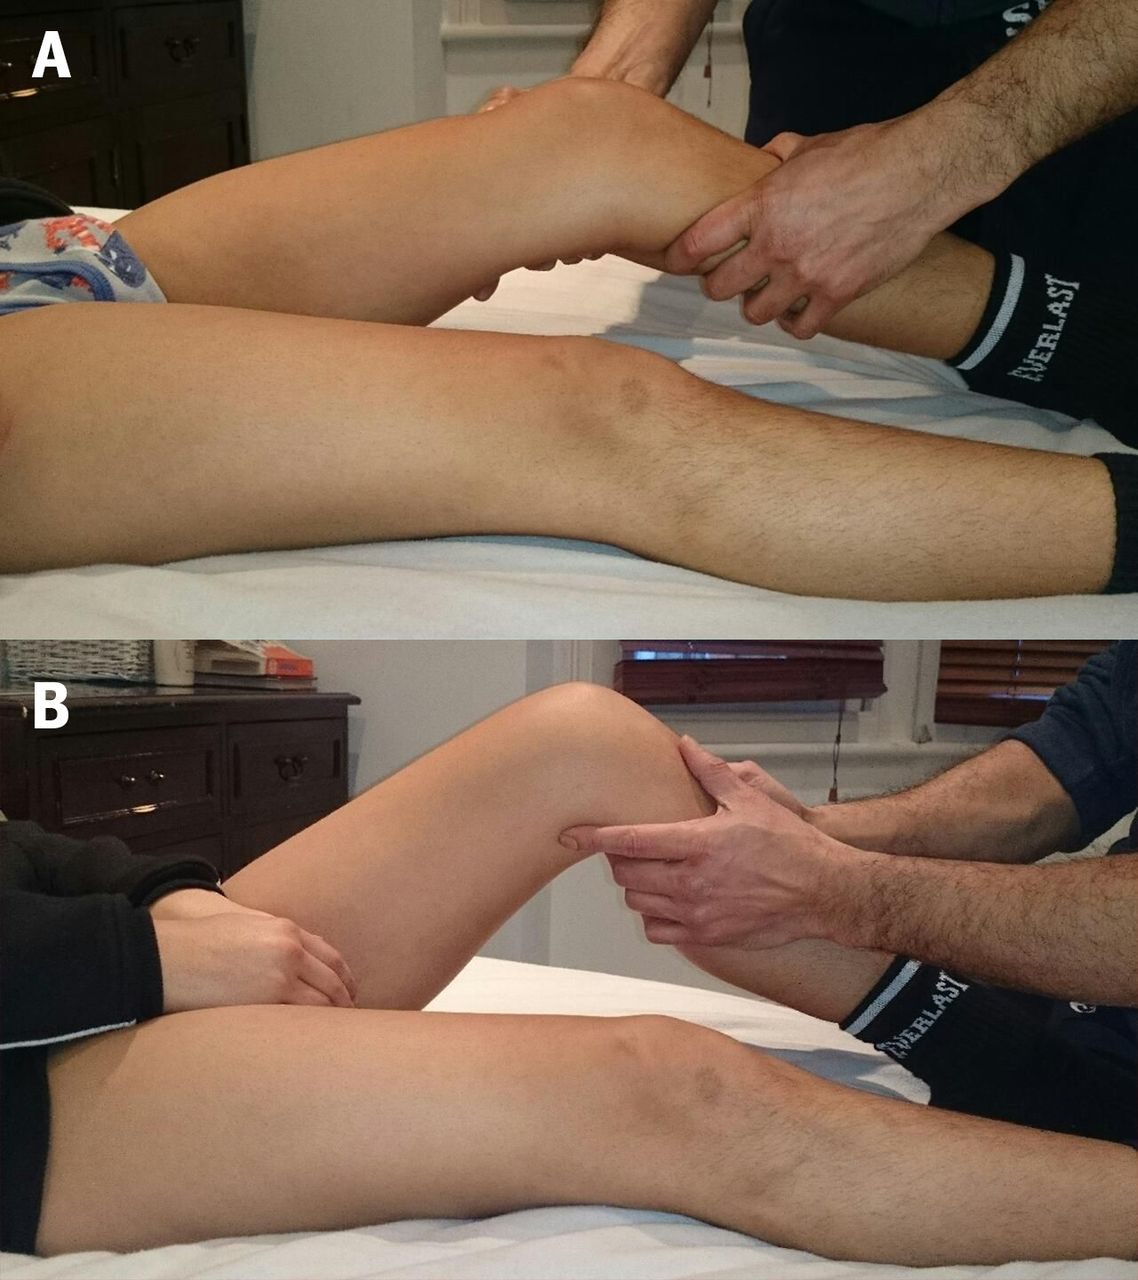 Knee injury in a 12 year old girl | The BMJ